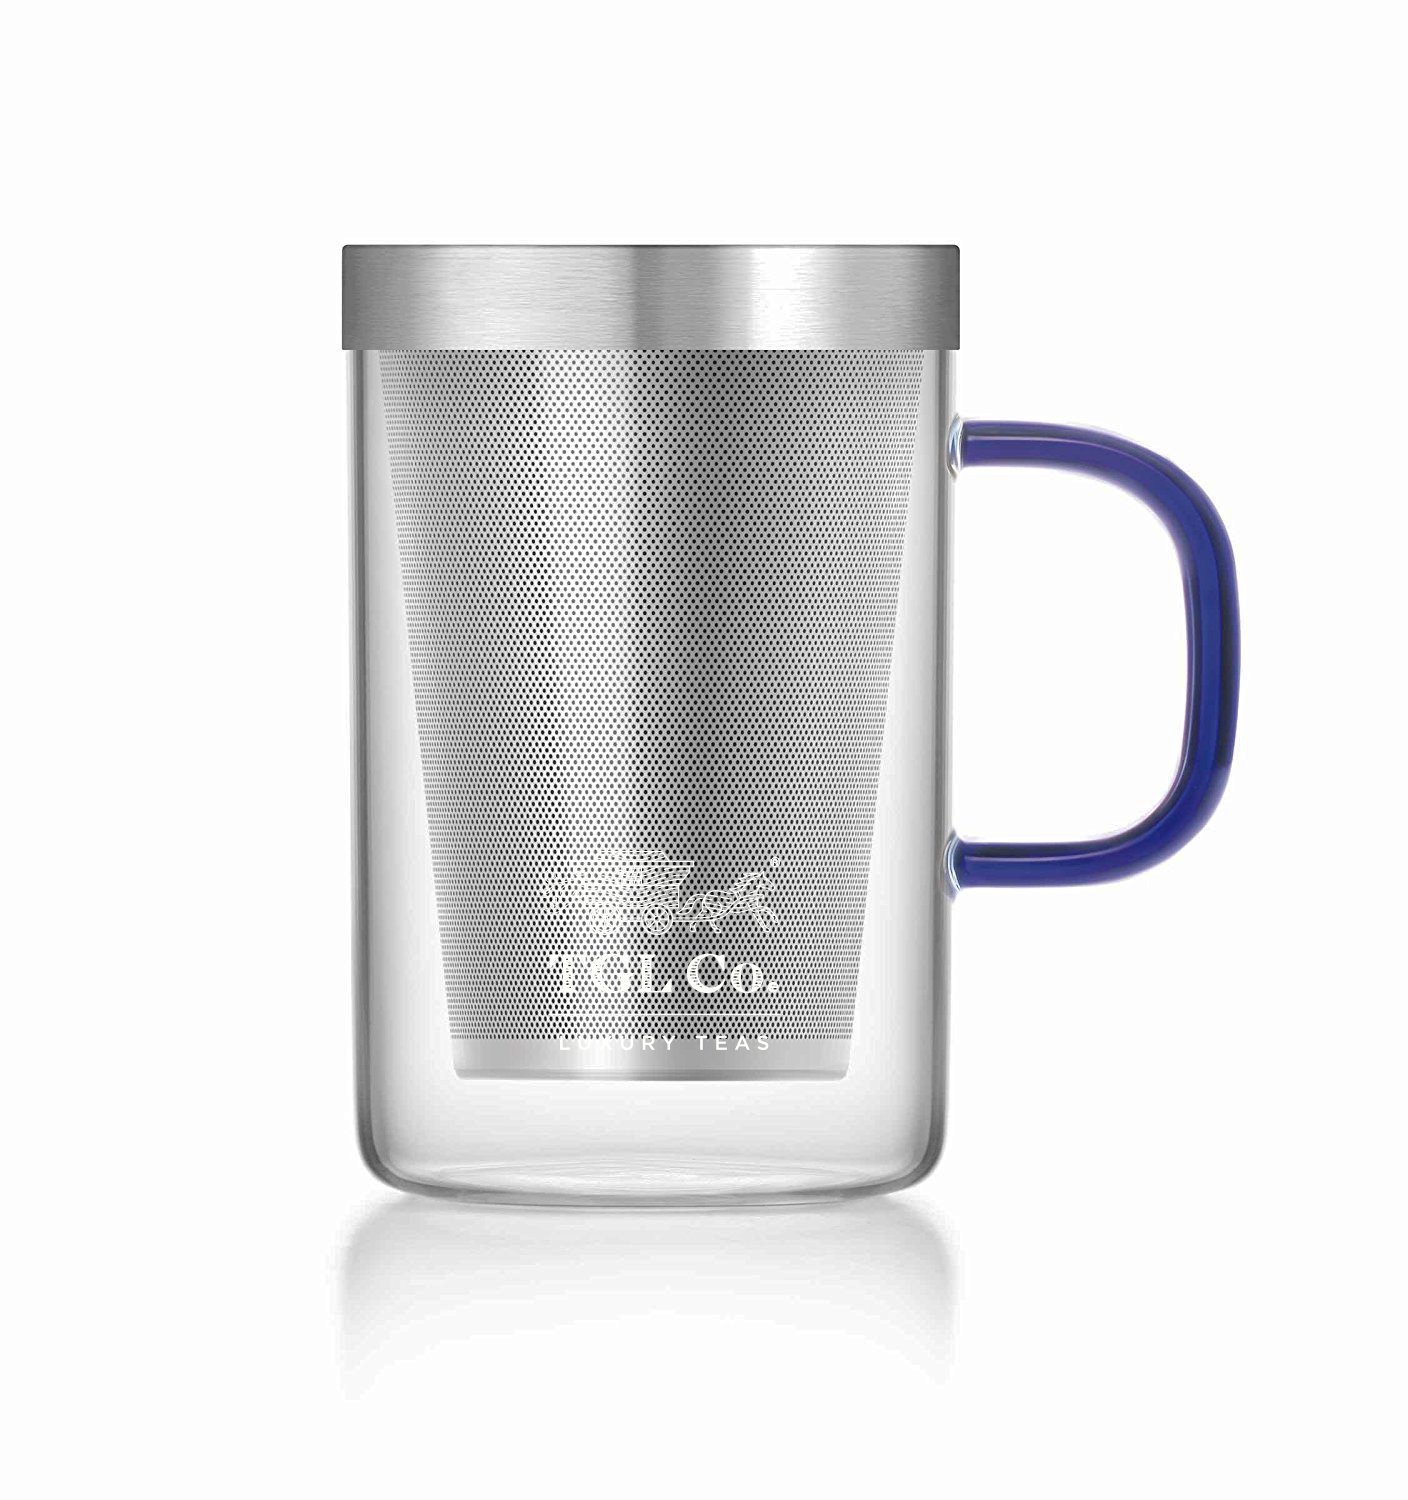 TGL Co. LUXURY TEAS Stainless Steel Tea Cup With Lid, 500Ml, Silver